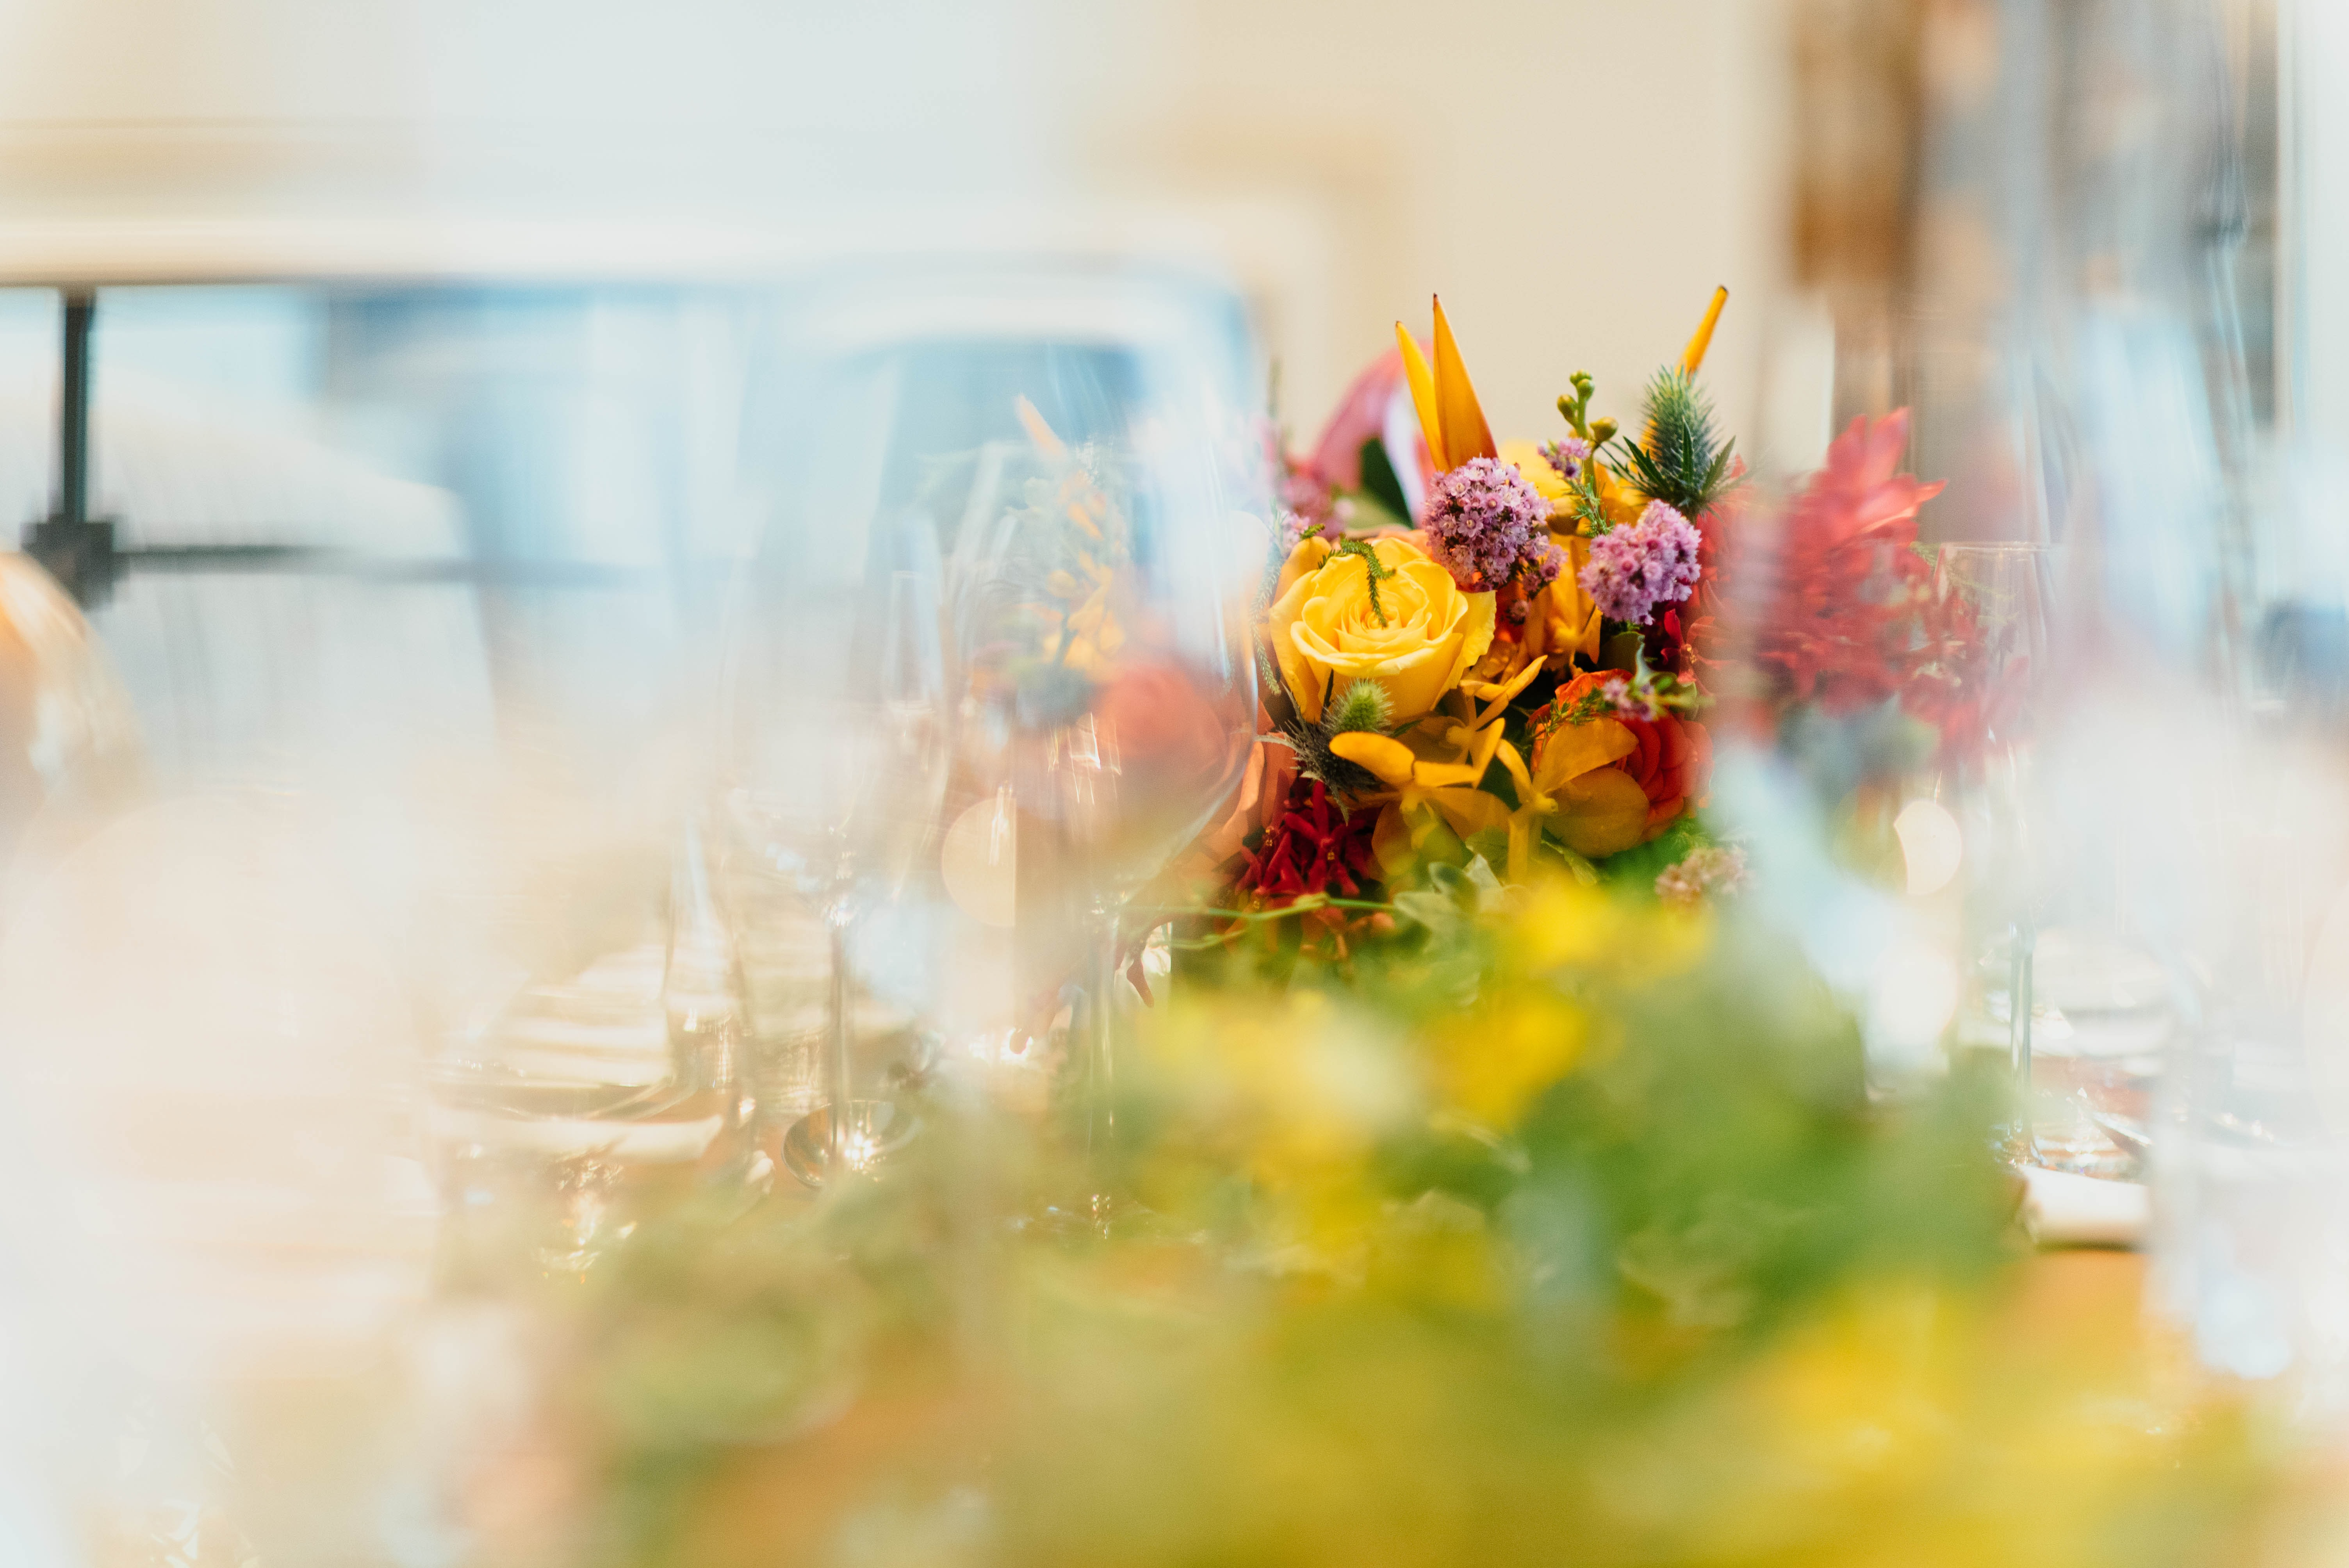 tilt shift lens photography of yellow flower near wine glass